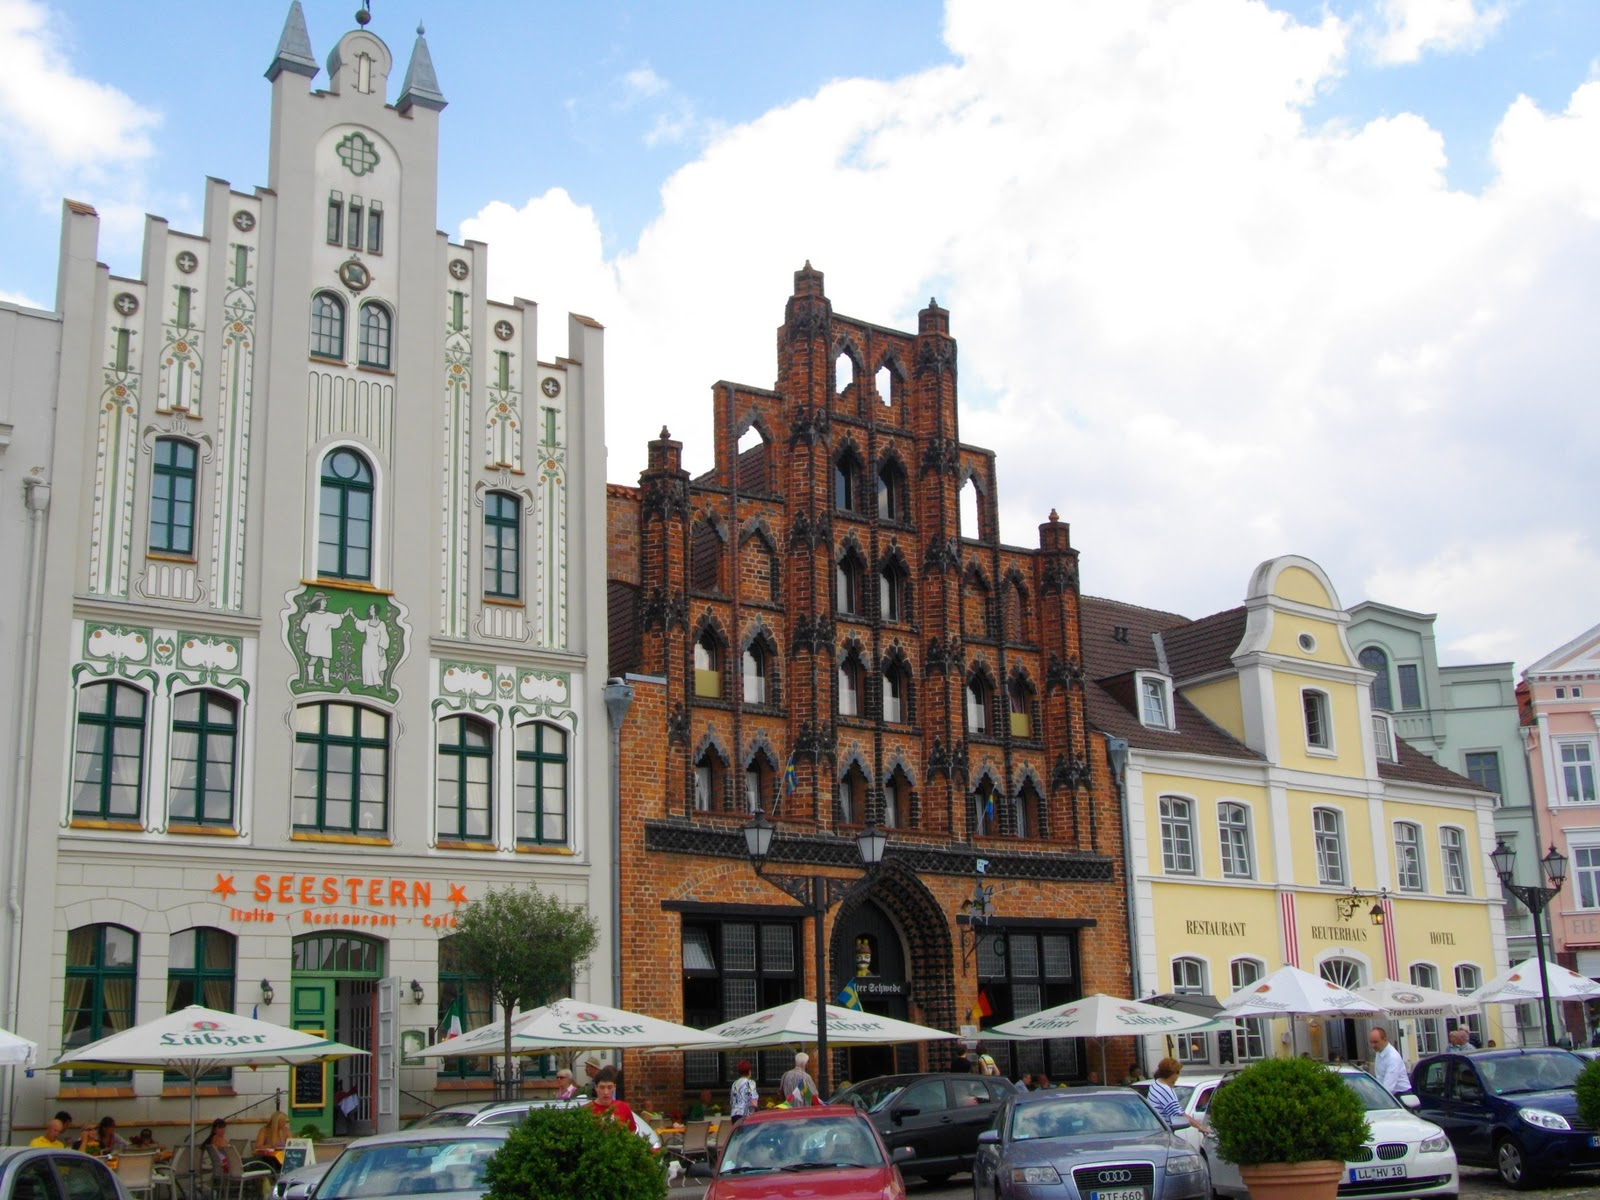 Wismar Germany  city photos gallery : Trip to Wismar, Germany part 3 | Life in Luxembourg